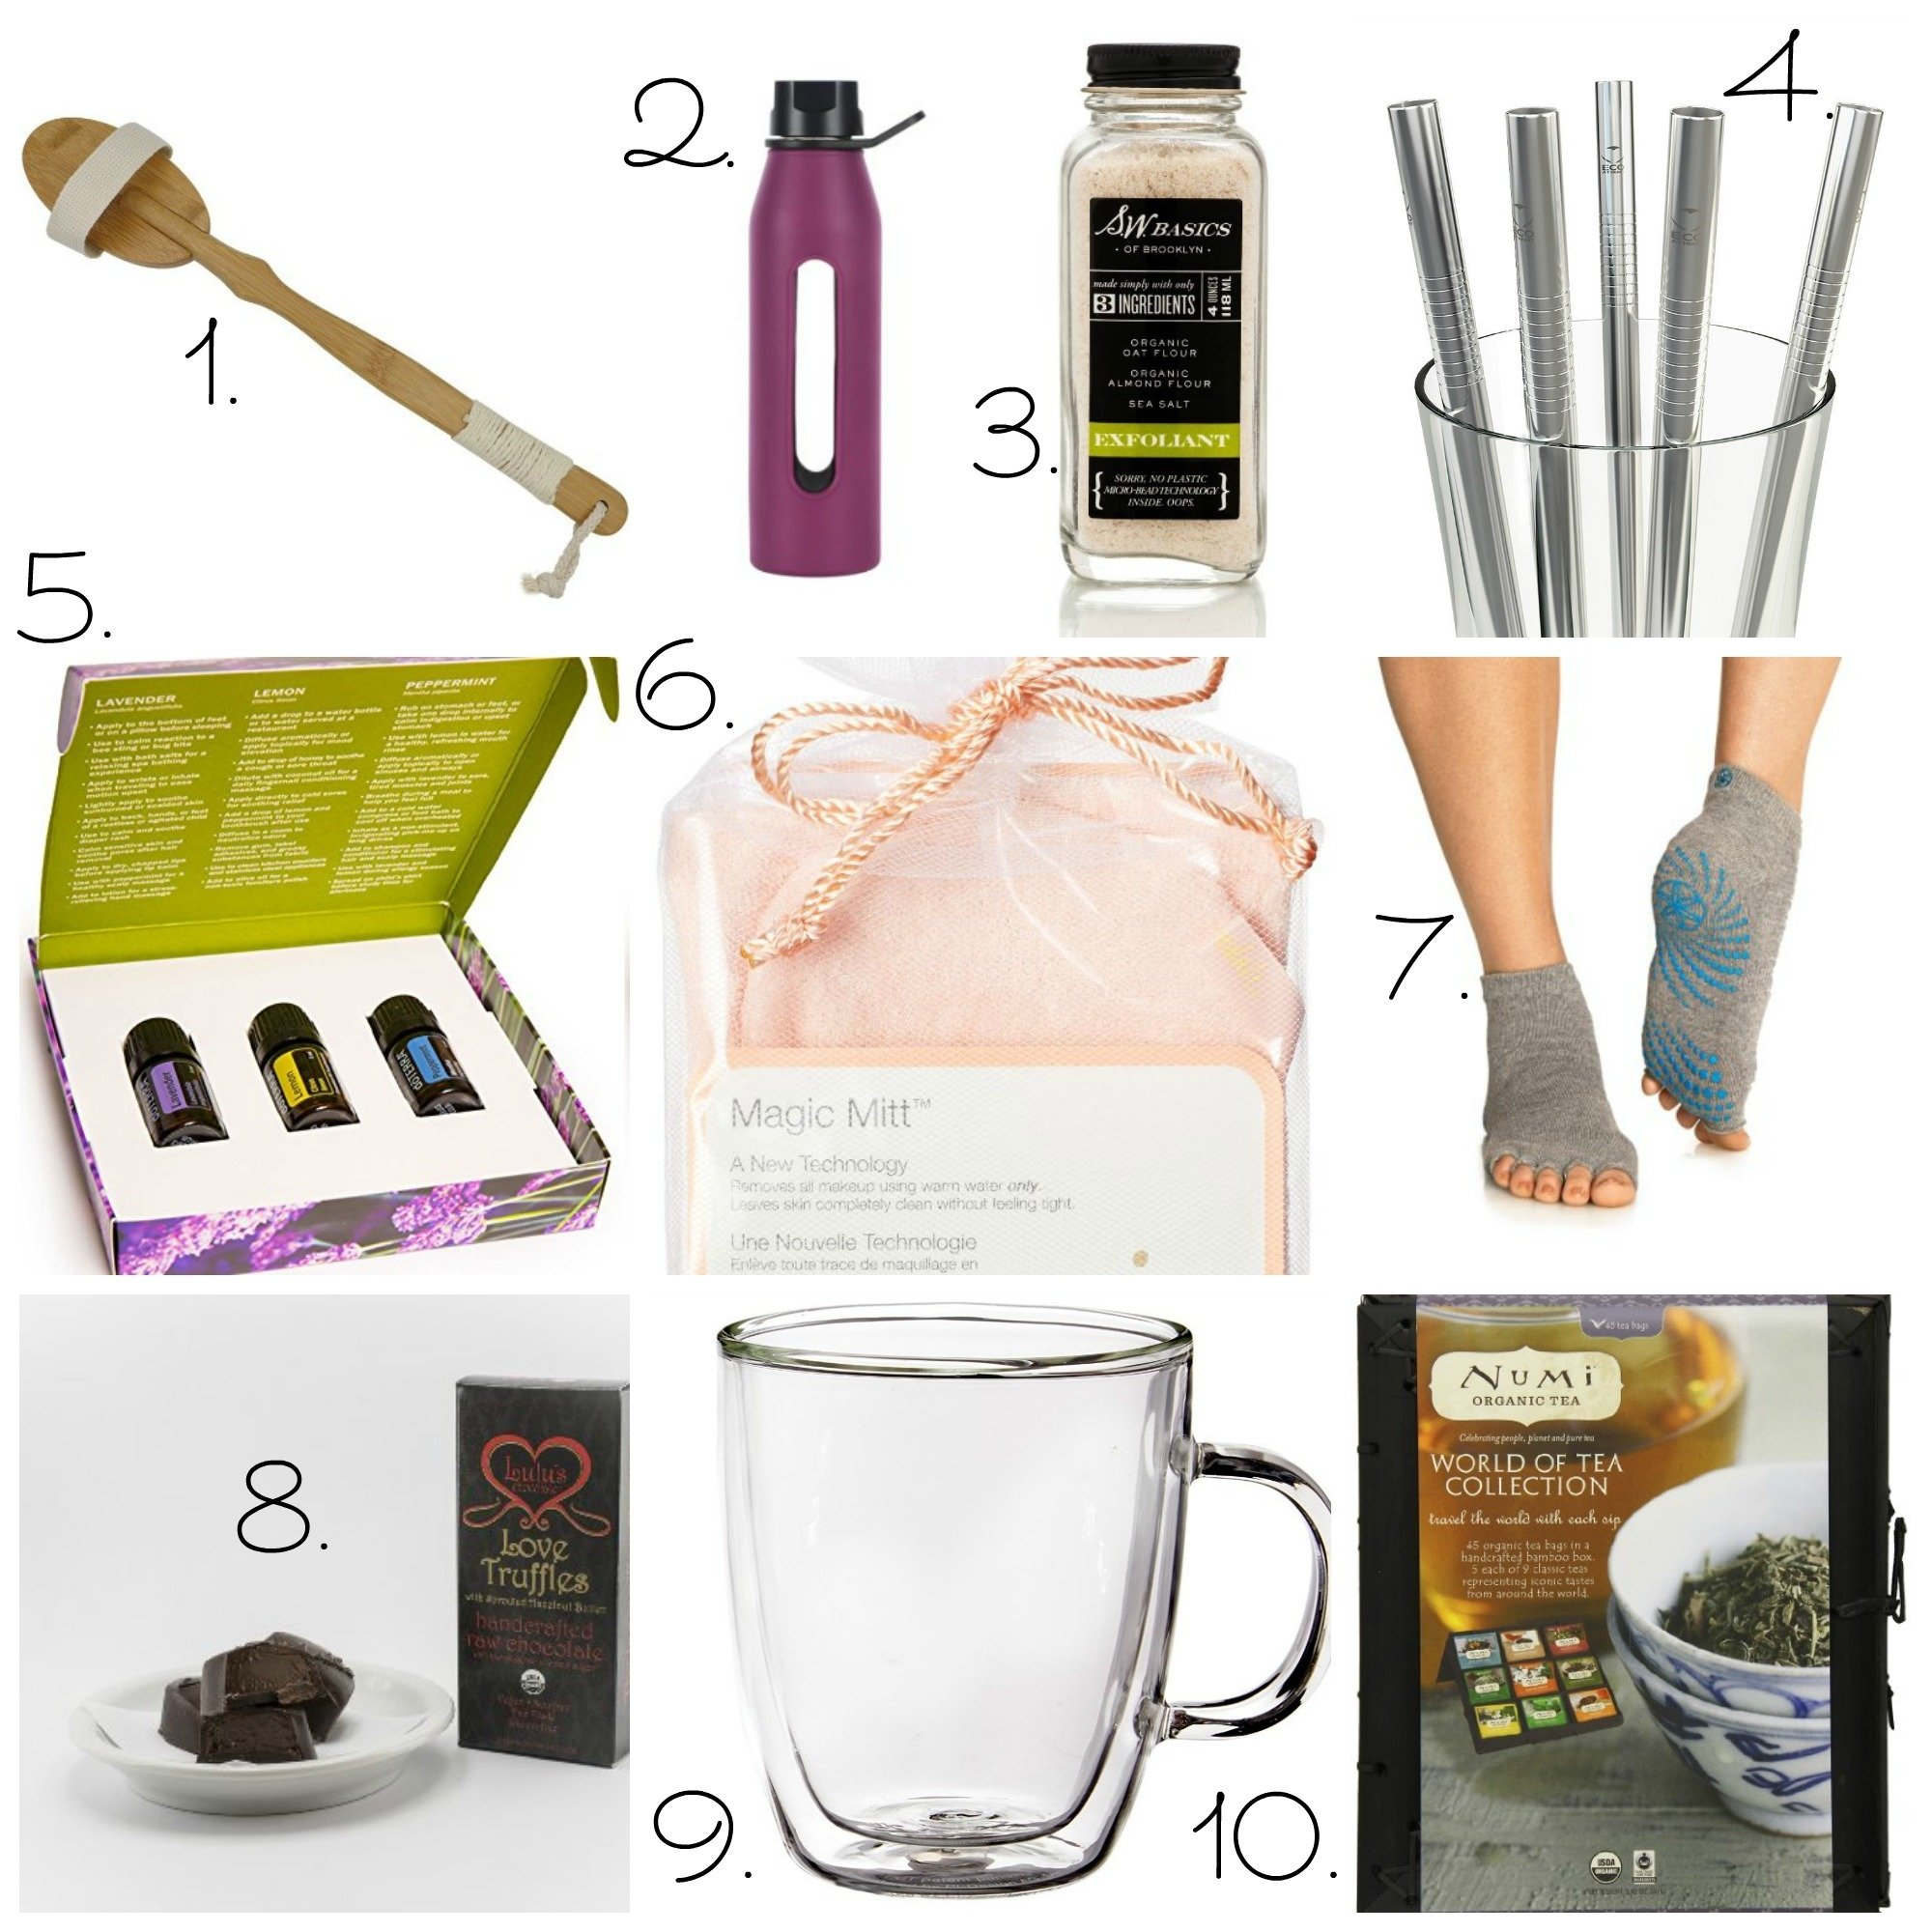 10 Attractive Great Gift Ideas For Her small gift guide ideas for her him and kids the organic dietitian 7